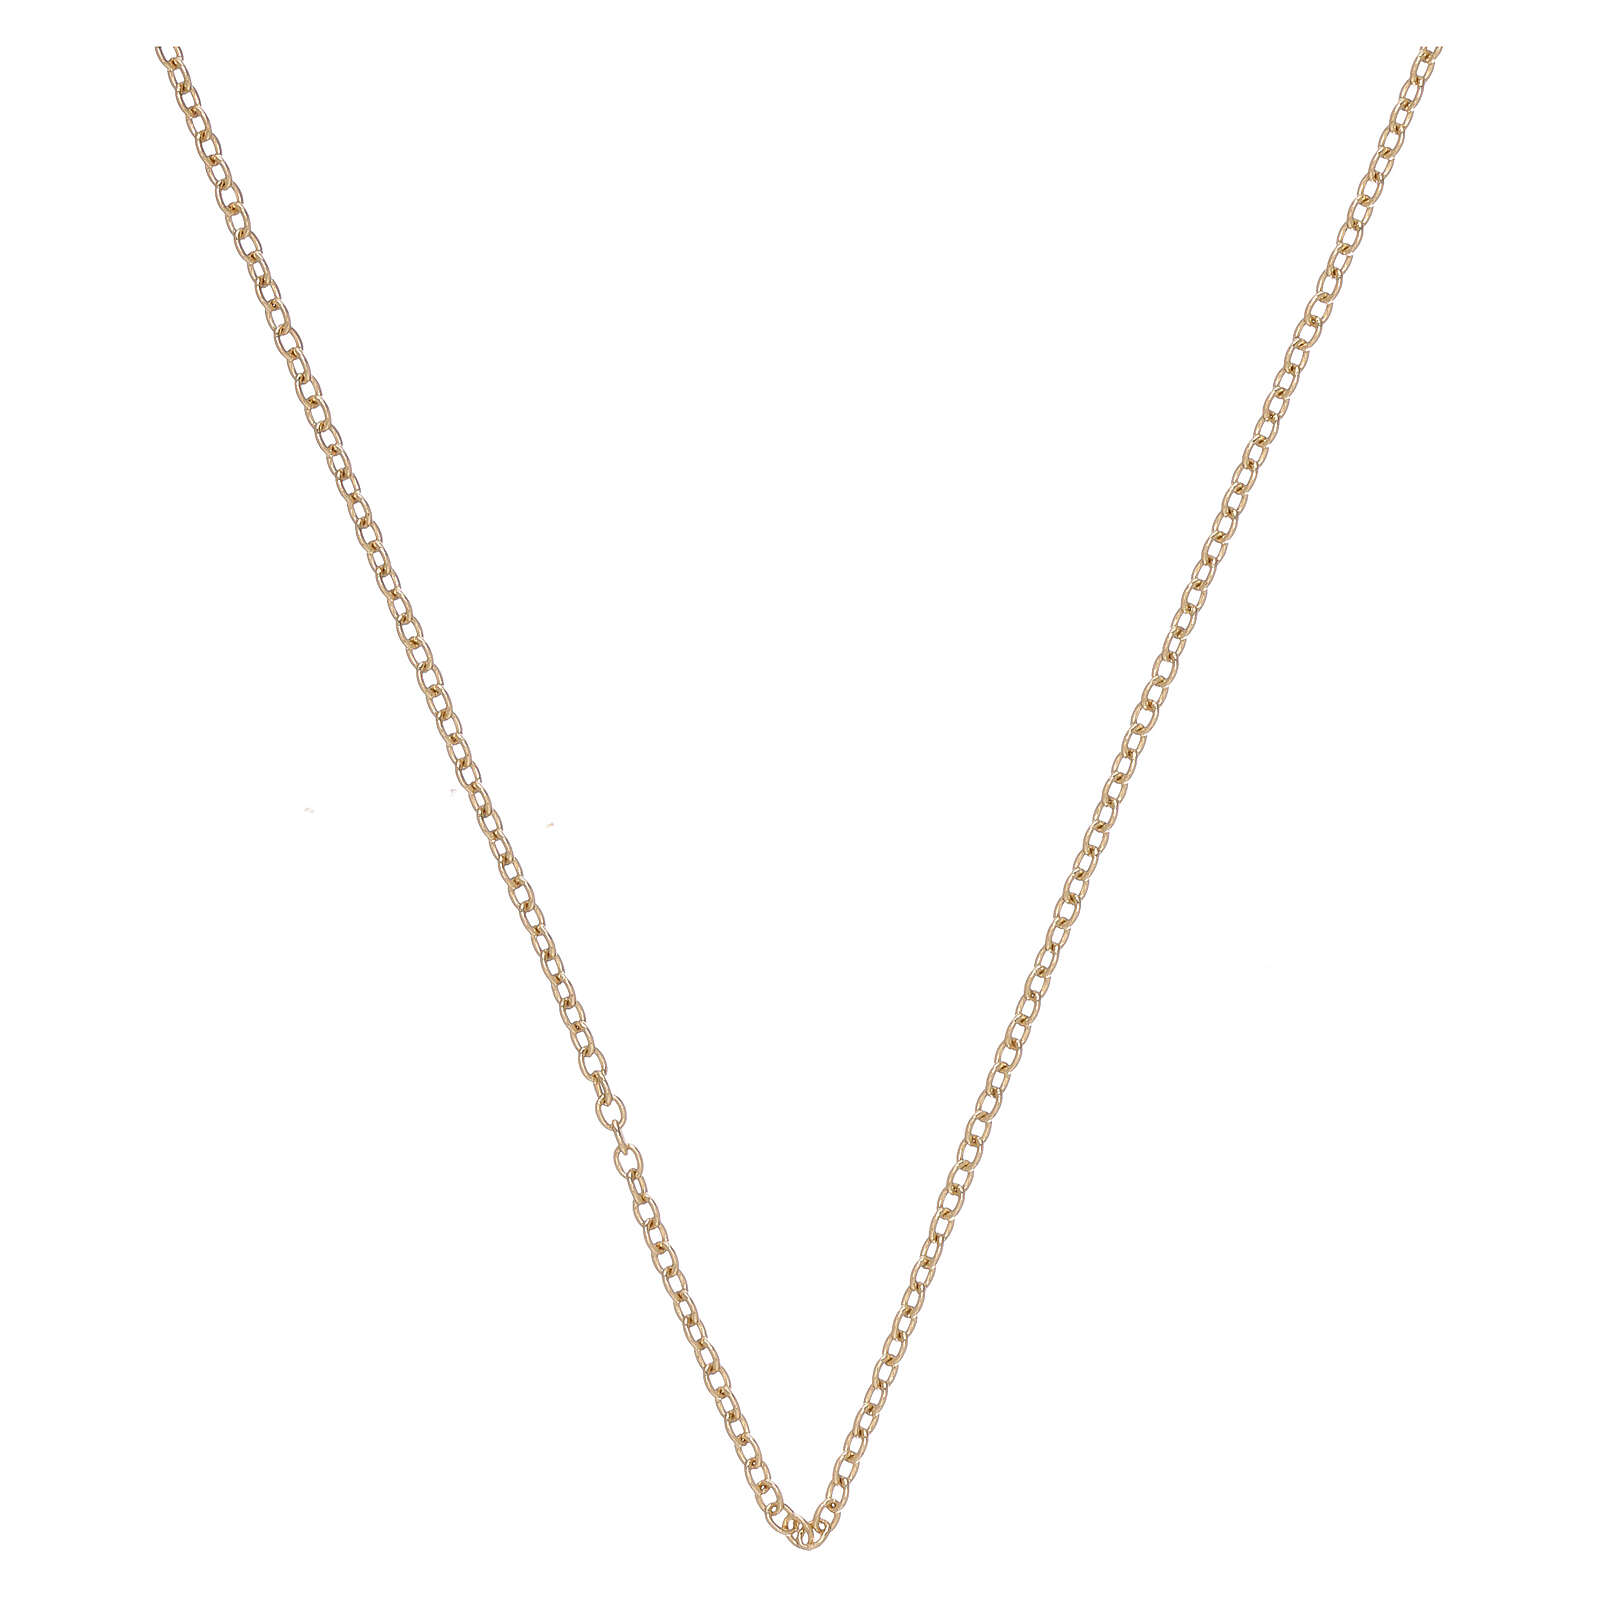 Rolo chain 18-carat yellow gold 19 3/4 in 4